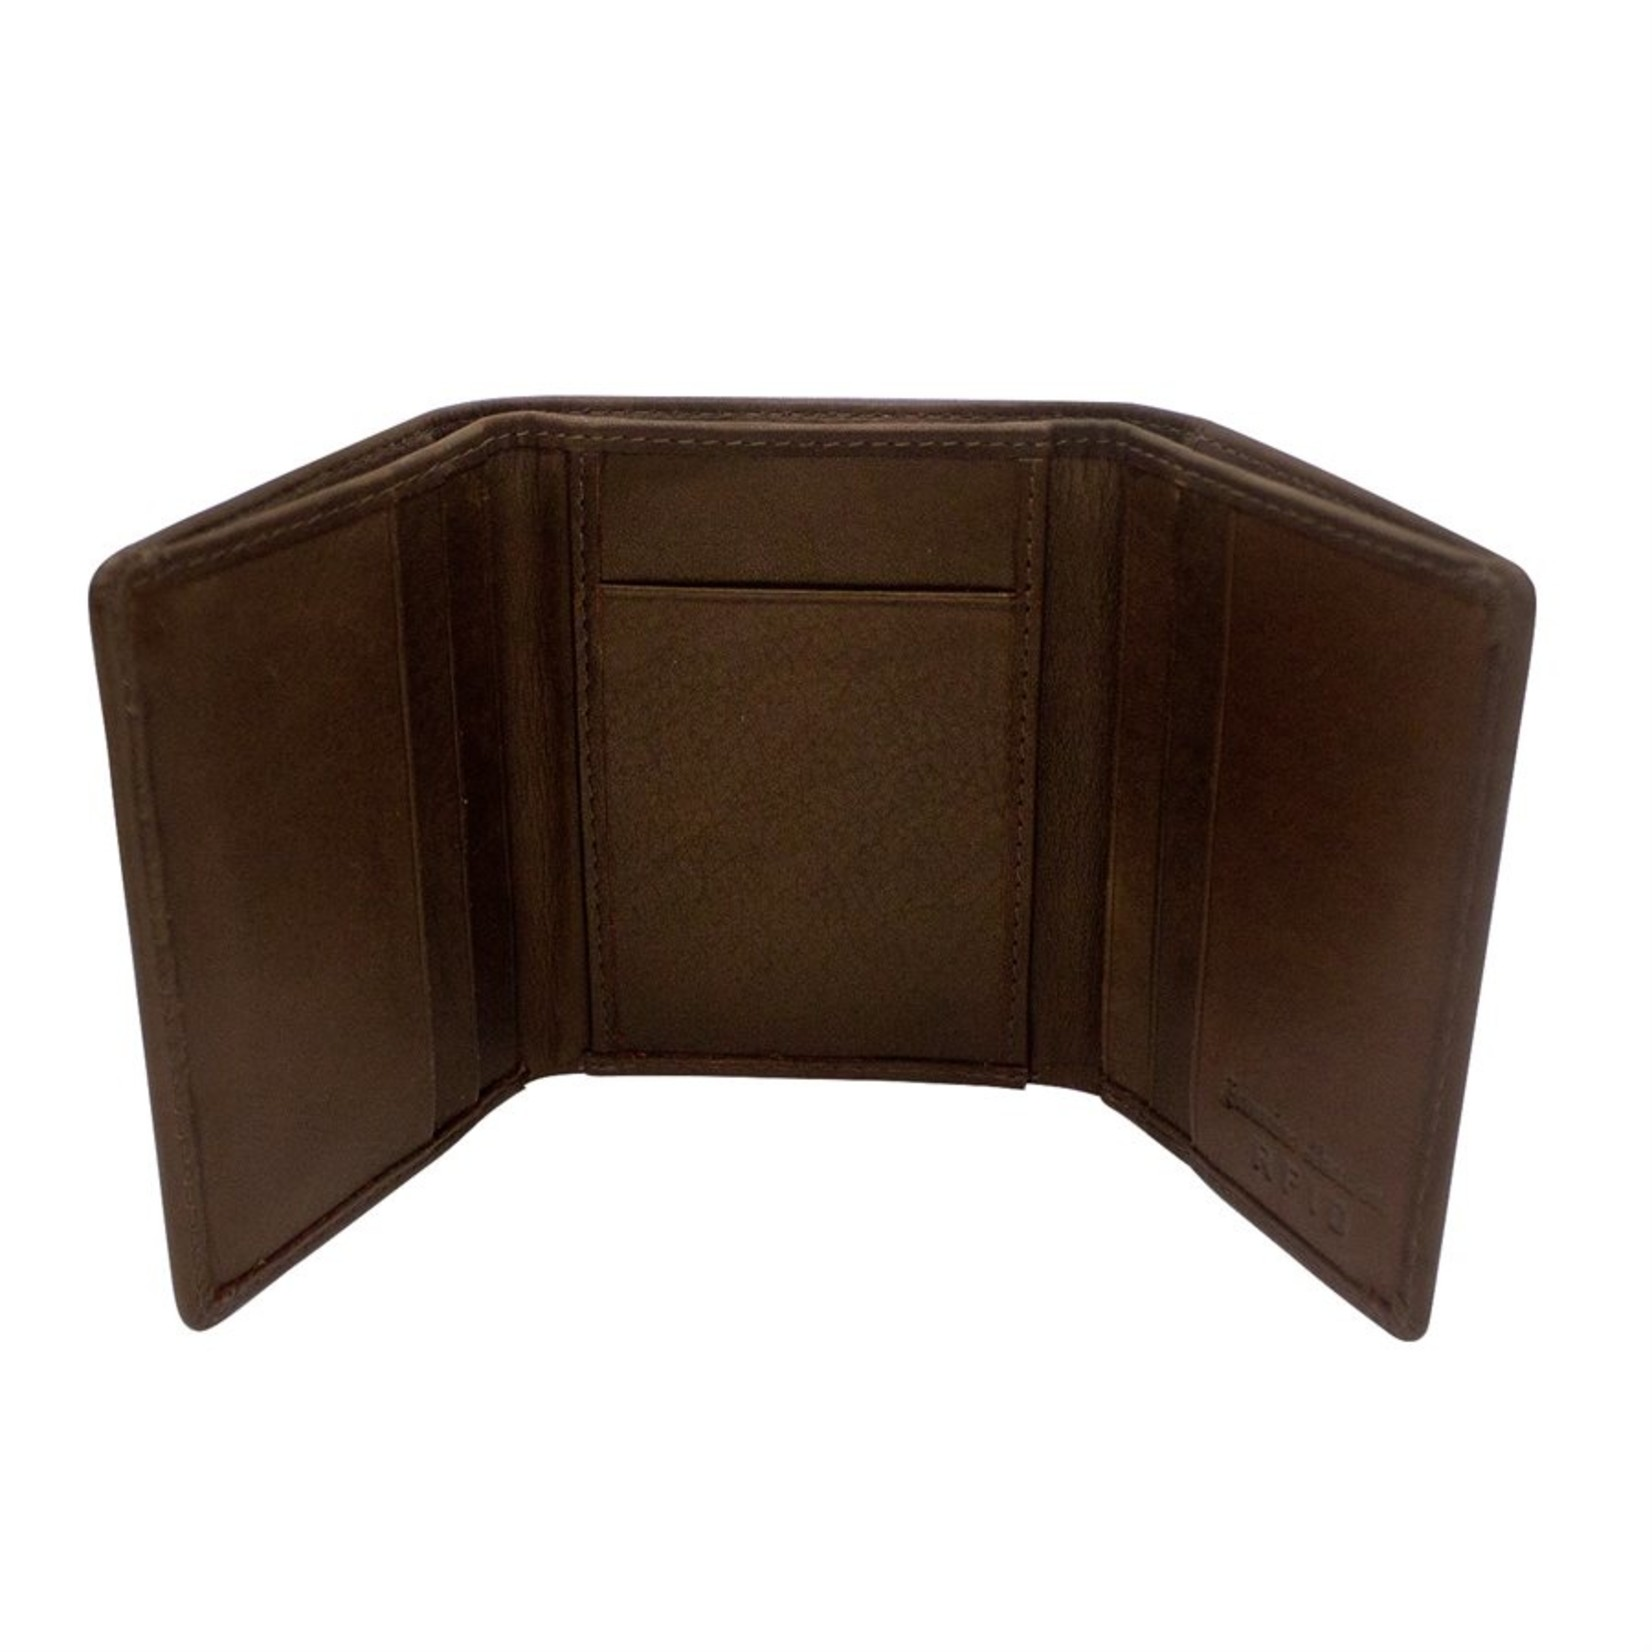 Leather Handbags and Accessories 7130 Brown - RFID Trifold Wallet